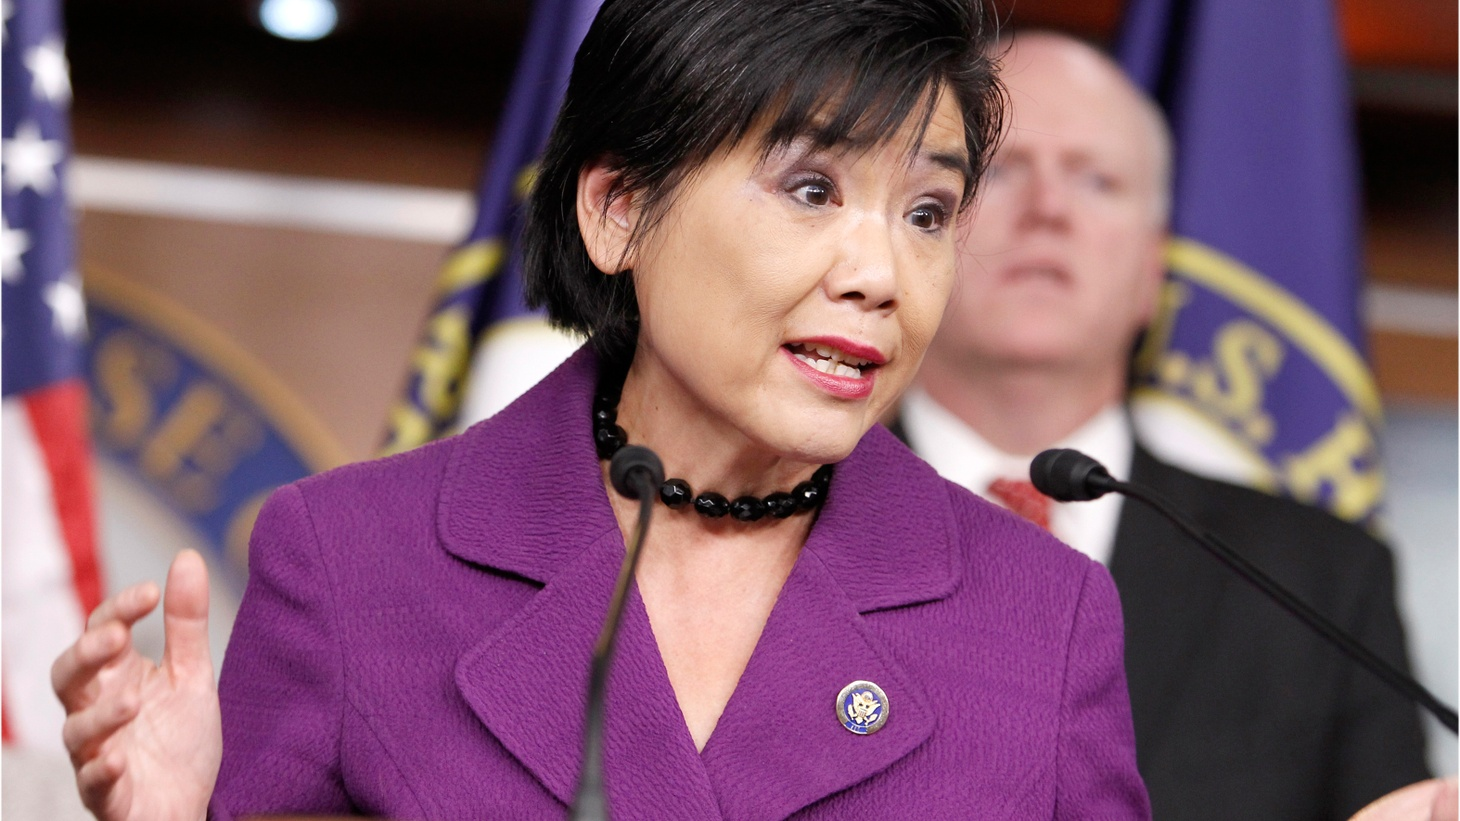 Local congresswoman Judy Chu says she's receiving panicked calls from her constituents and no answers from immigration officials about deportations. We also talk about the latest turmoil at the White House.